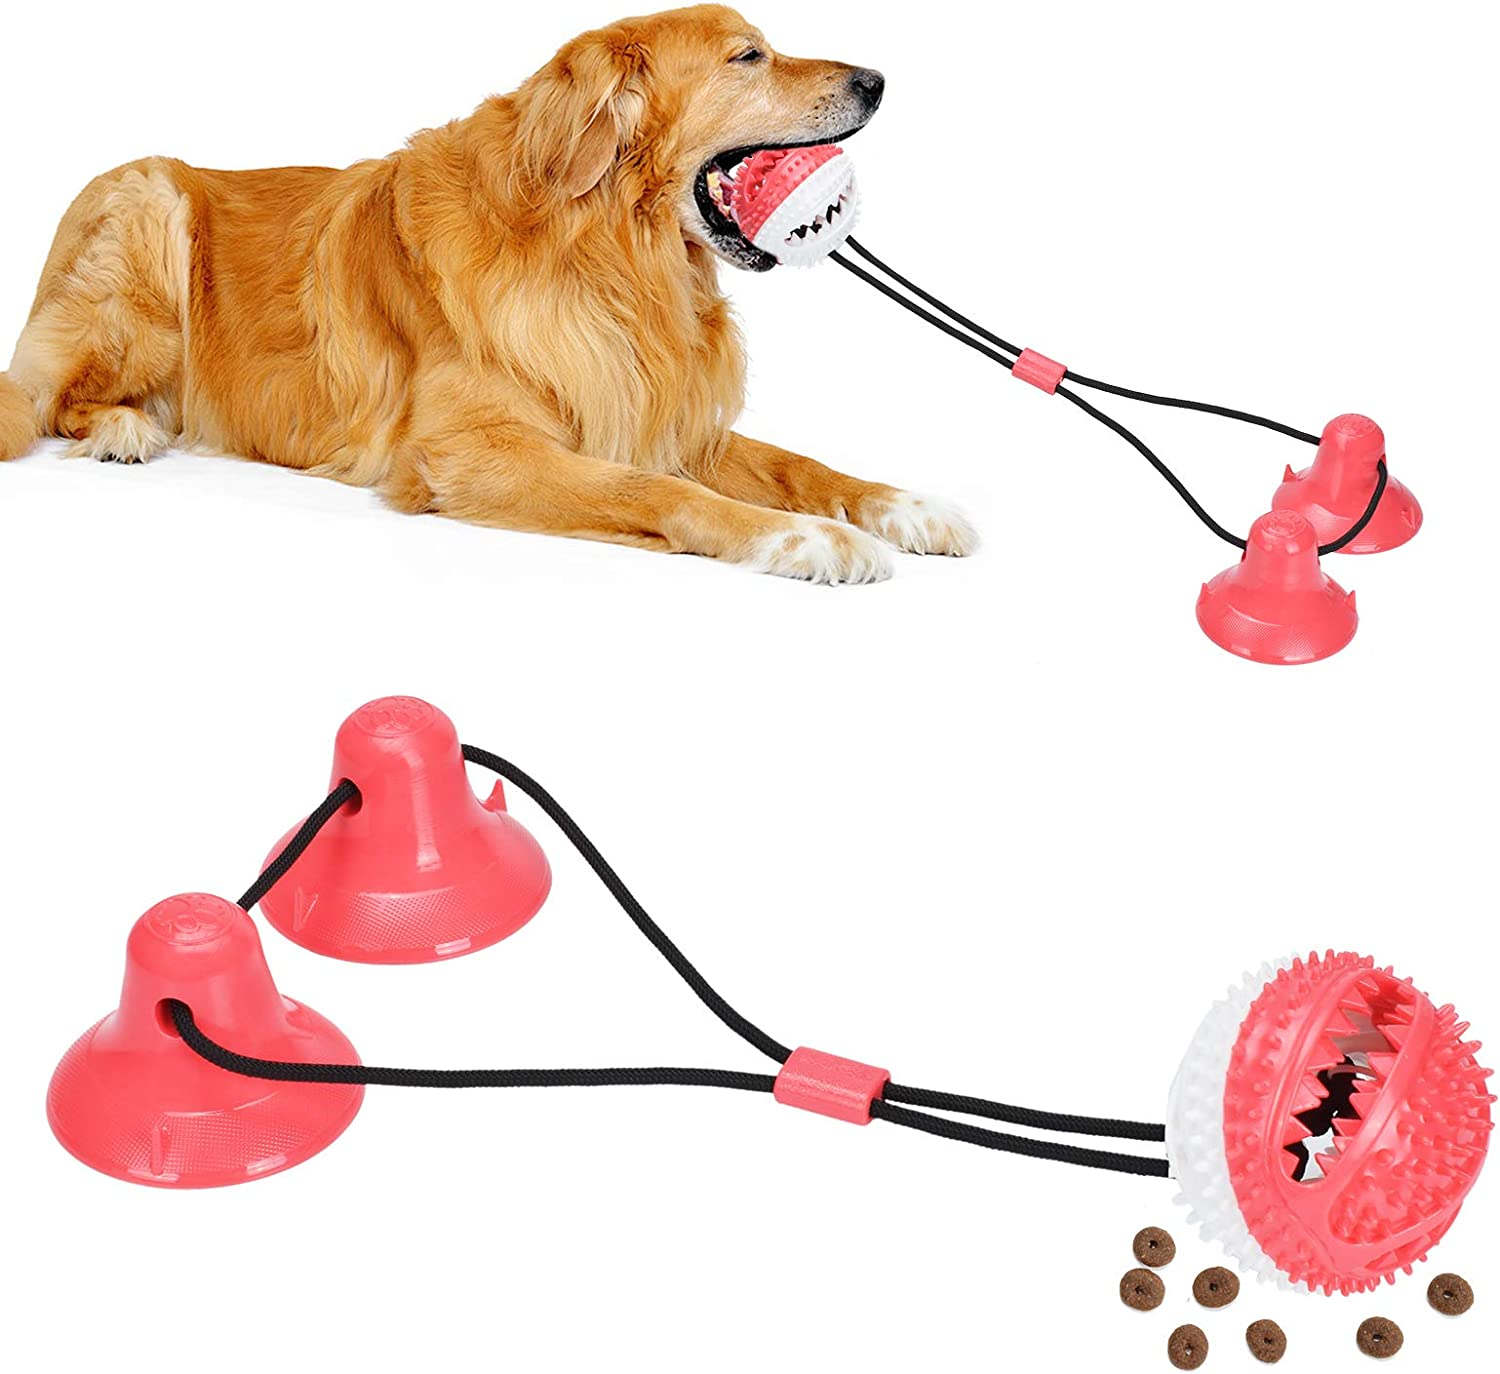 PetBonus Dog Chew Toys, Pet Rope Toys with 2 Suction Cups, Dog Puzzle and Teeth Cleaning Toy, Interactive Treat Food Dispensing Toys for Small Medium Large Dogs